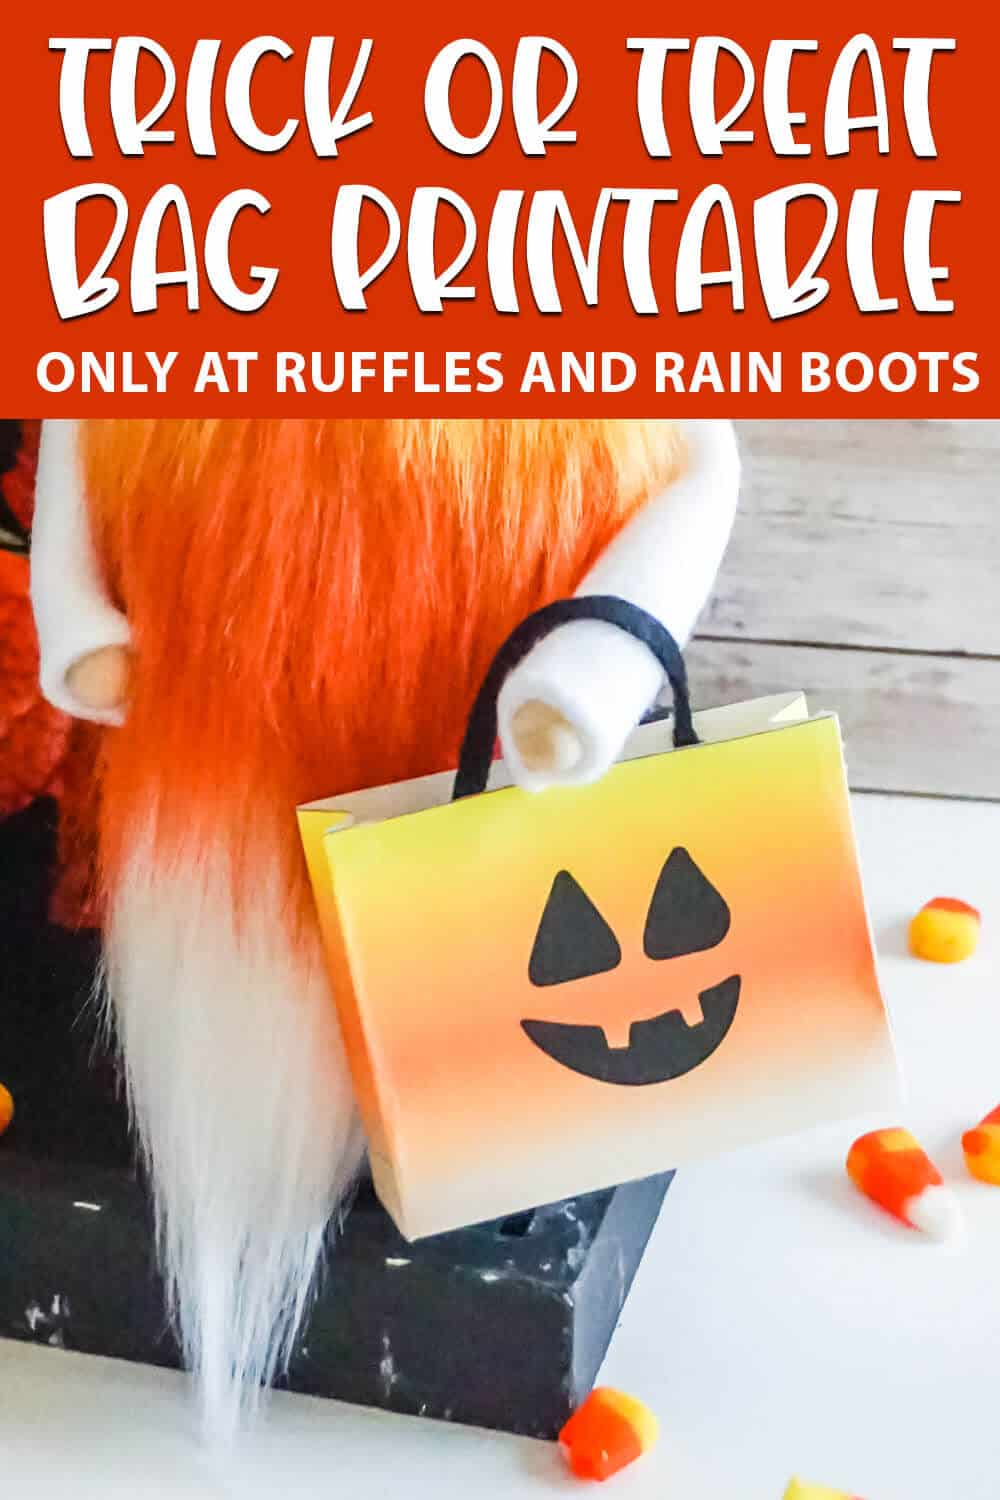 gnome candy bag printable with text which reads trick or treat bag printable